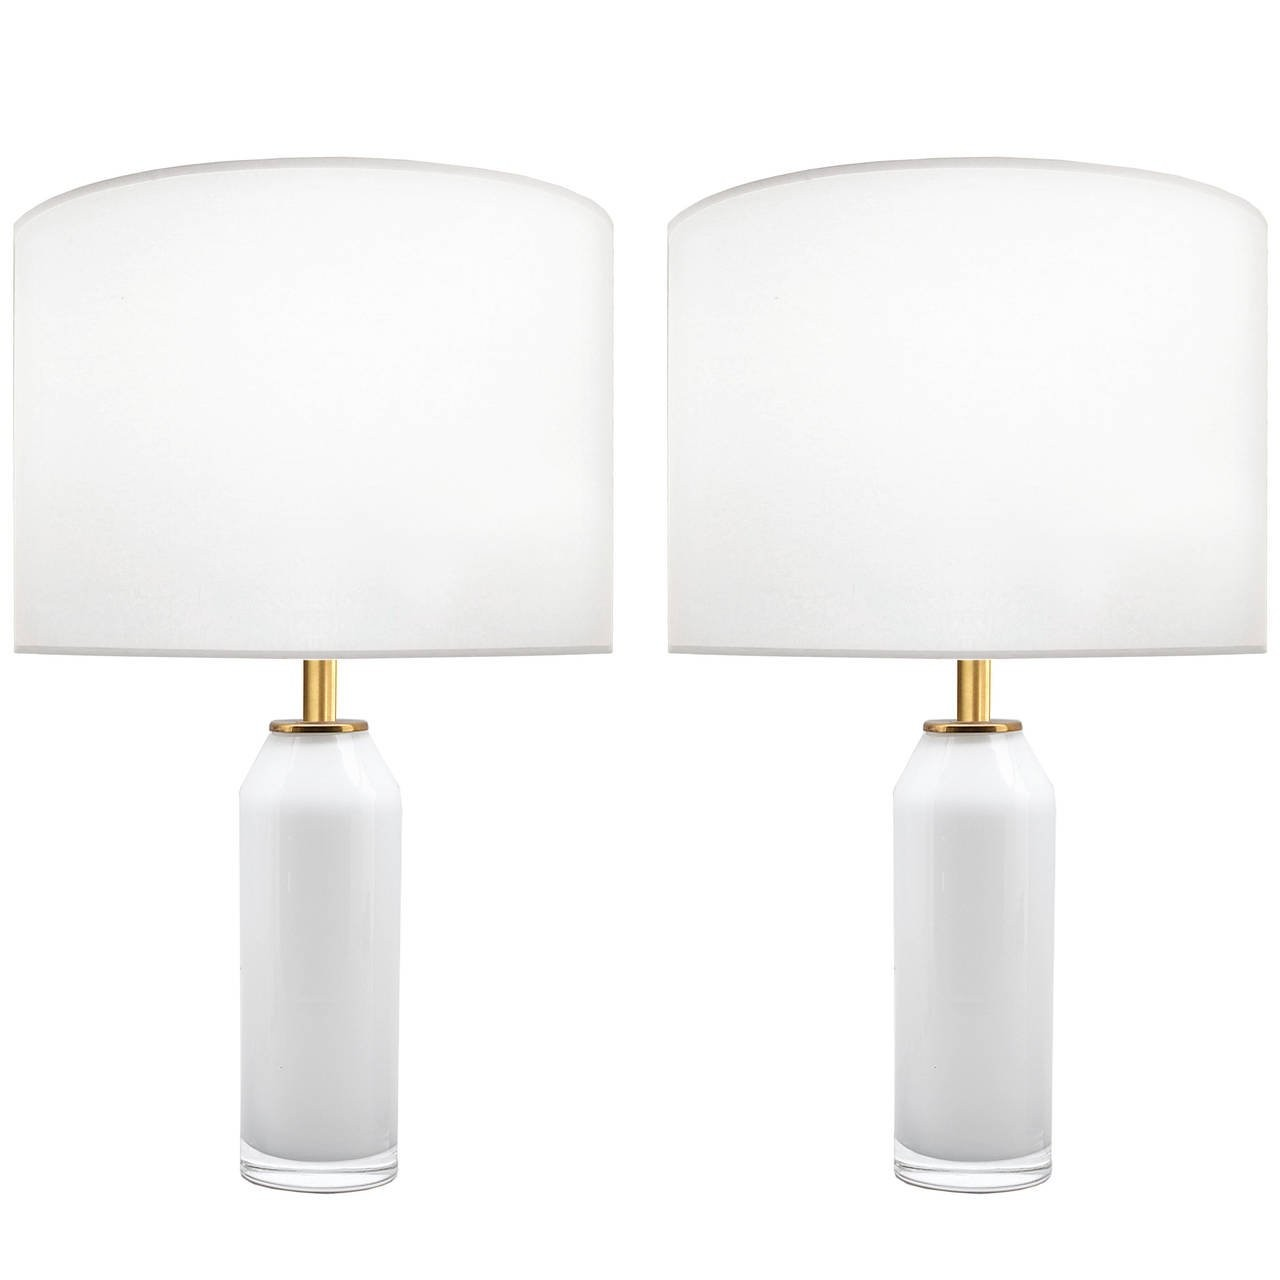 Pair of Nils Landberg for Orrefors White Glass Lamps